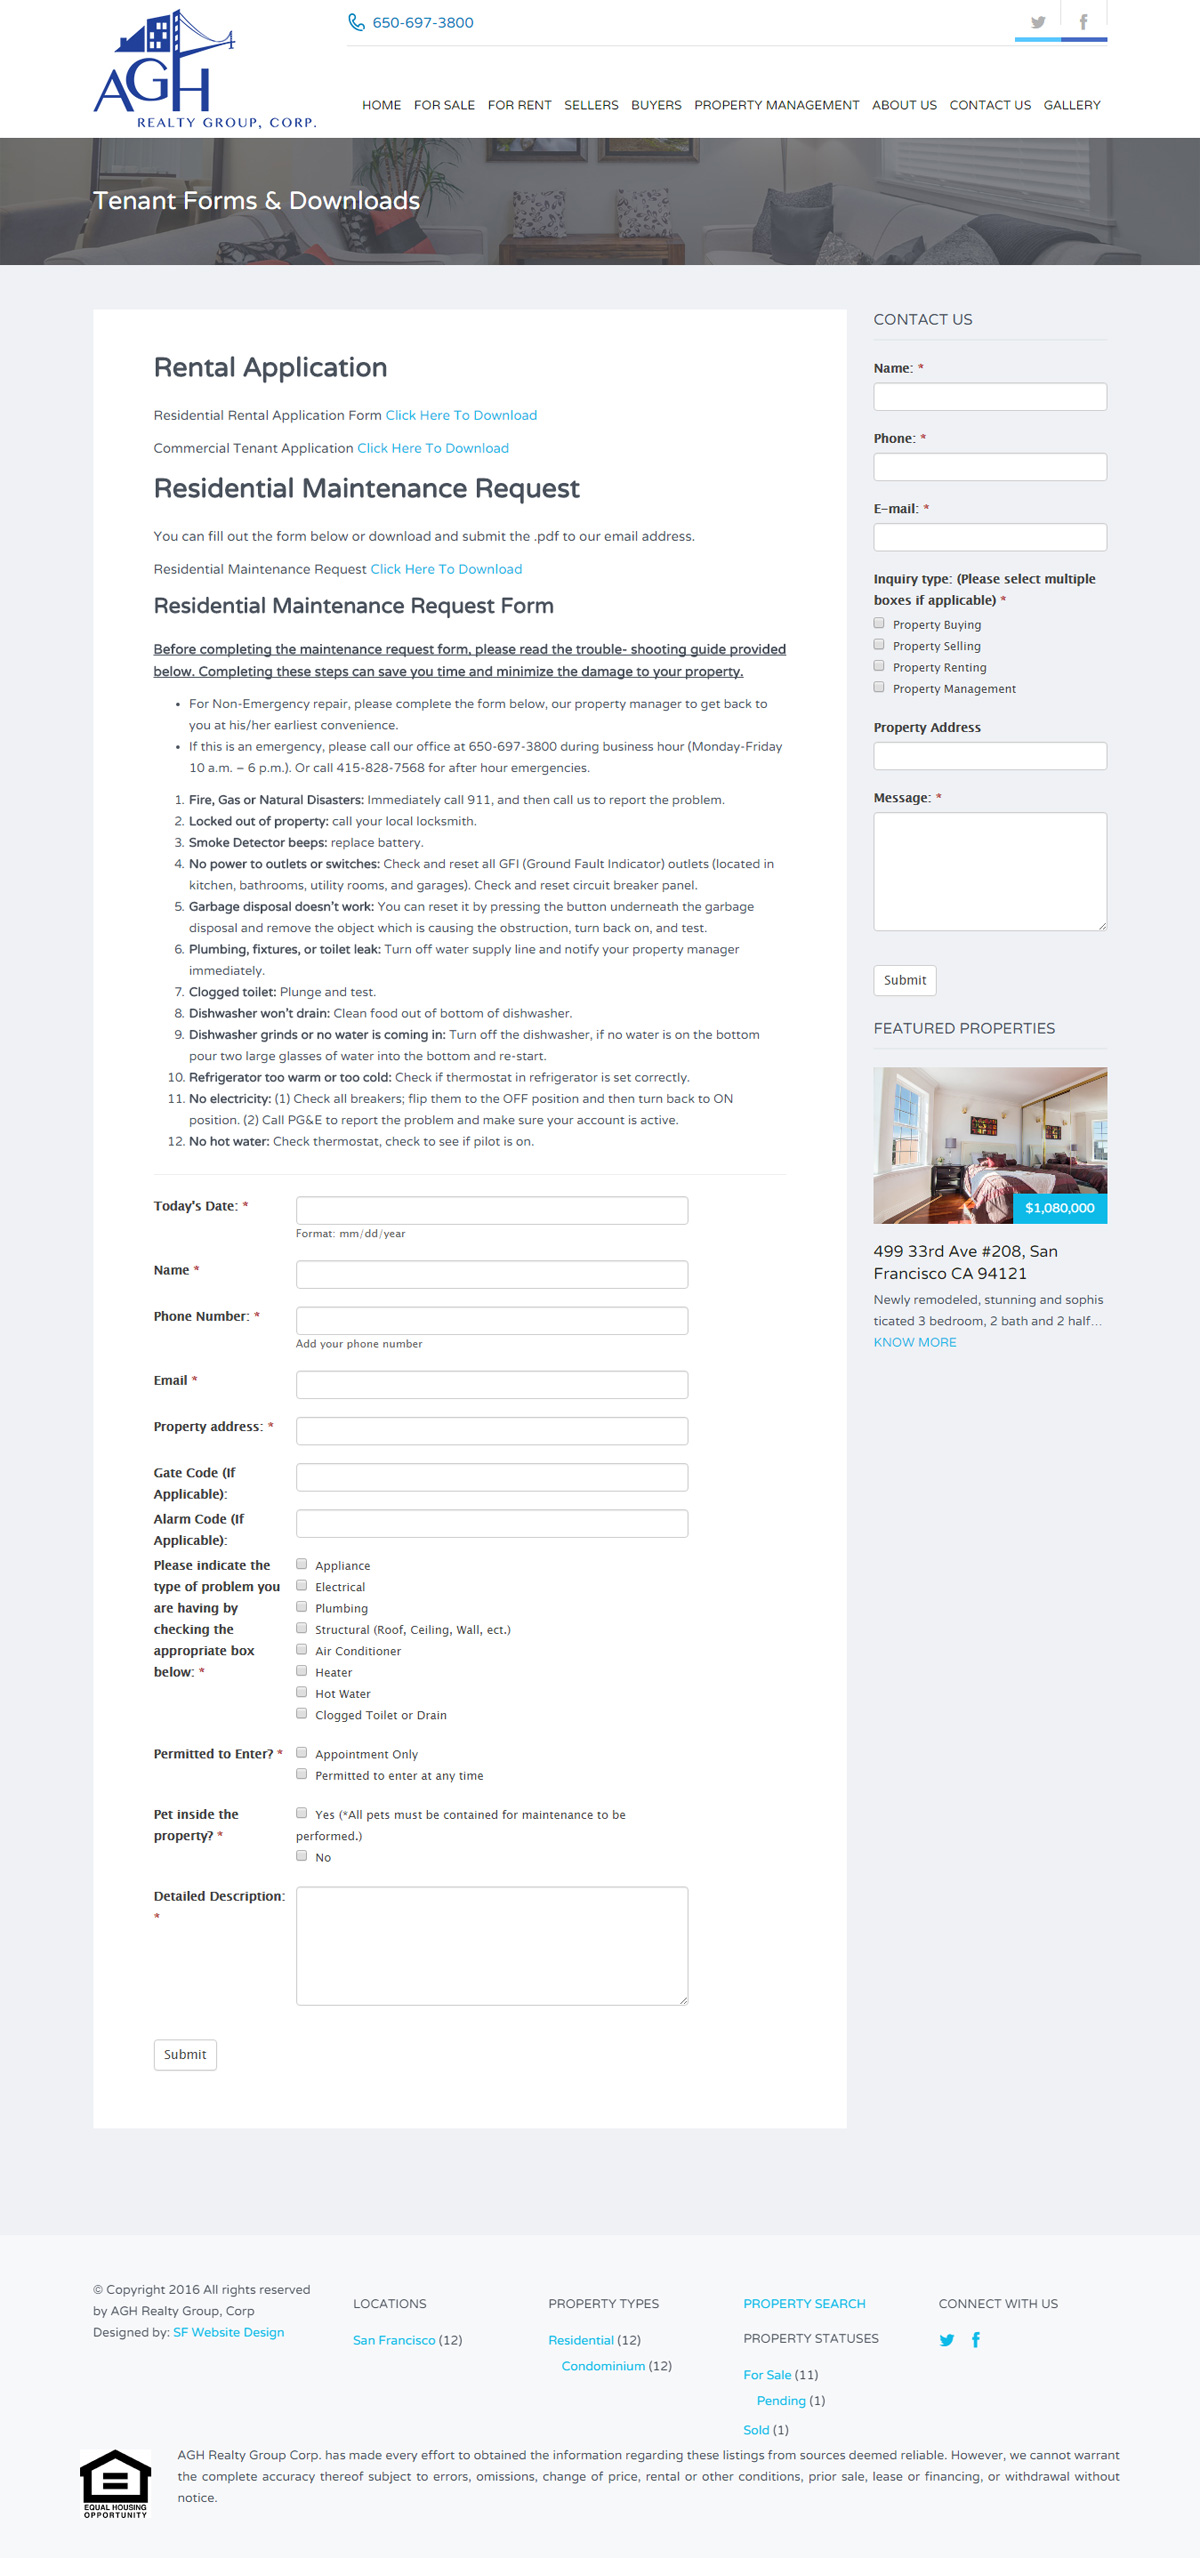 AGH Realty Group Tennant Application Form